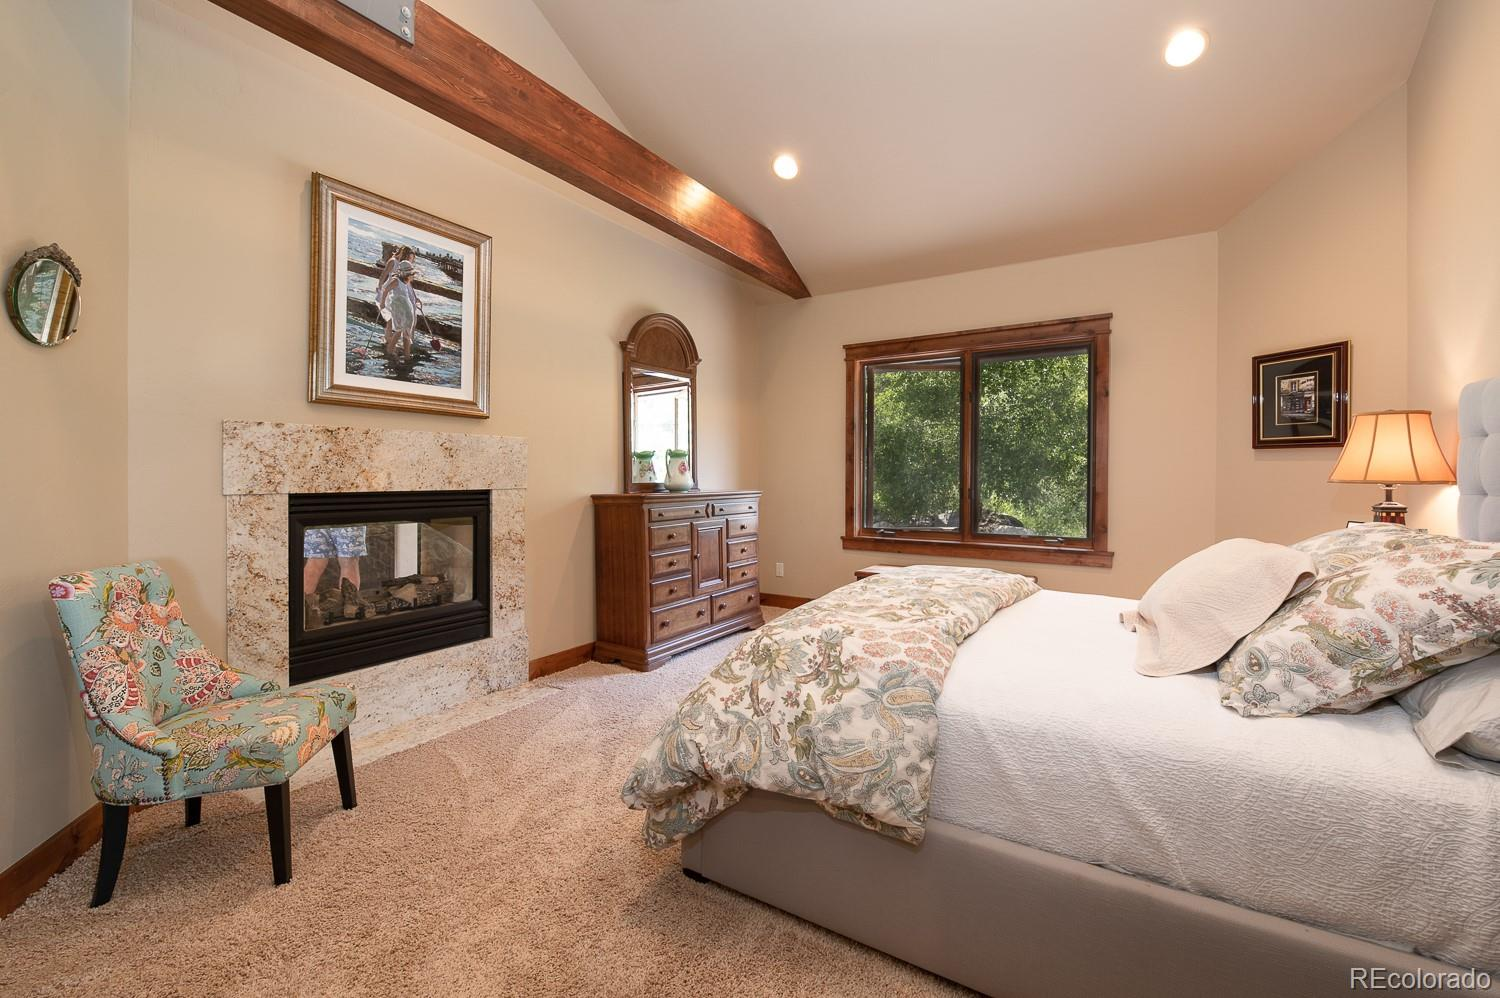 MLS# 4540014 - 18 - 1940 Clubhouse Drive, Steamboat Springs, CO 80487